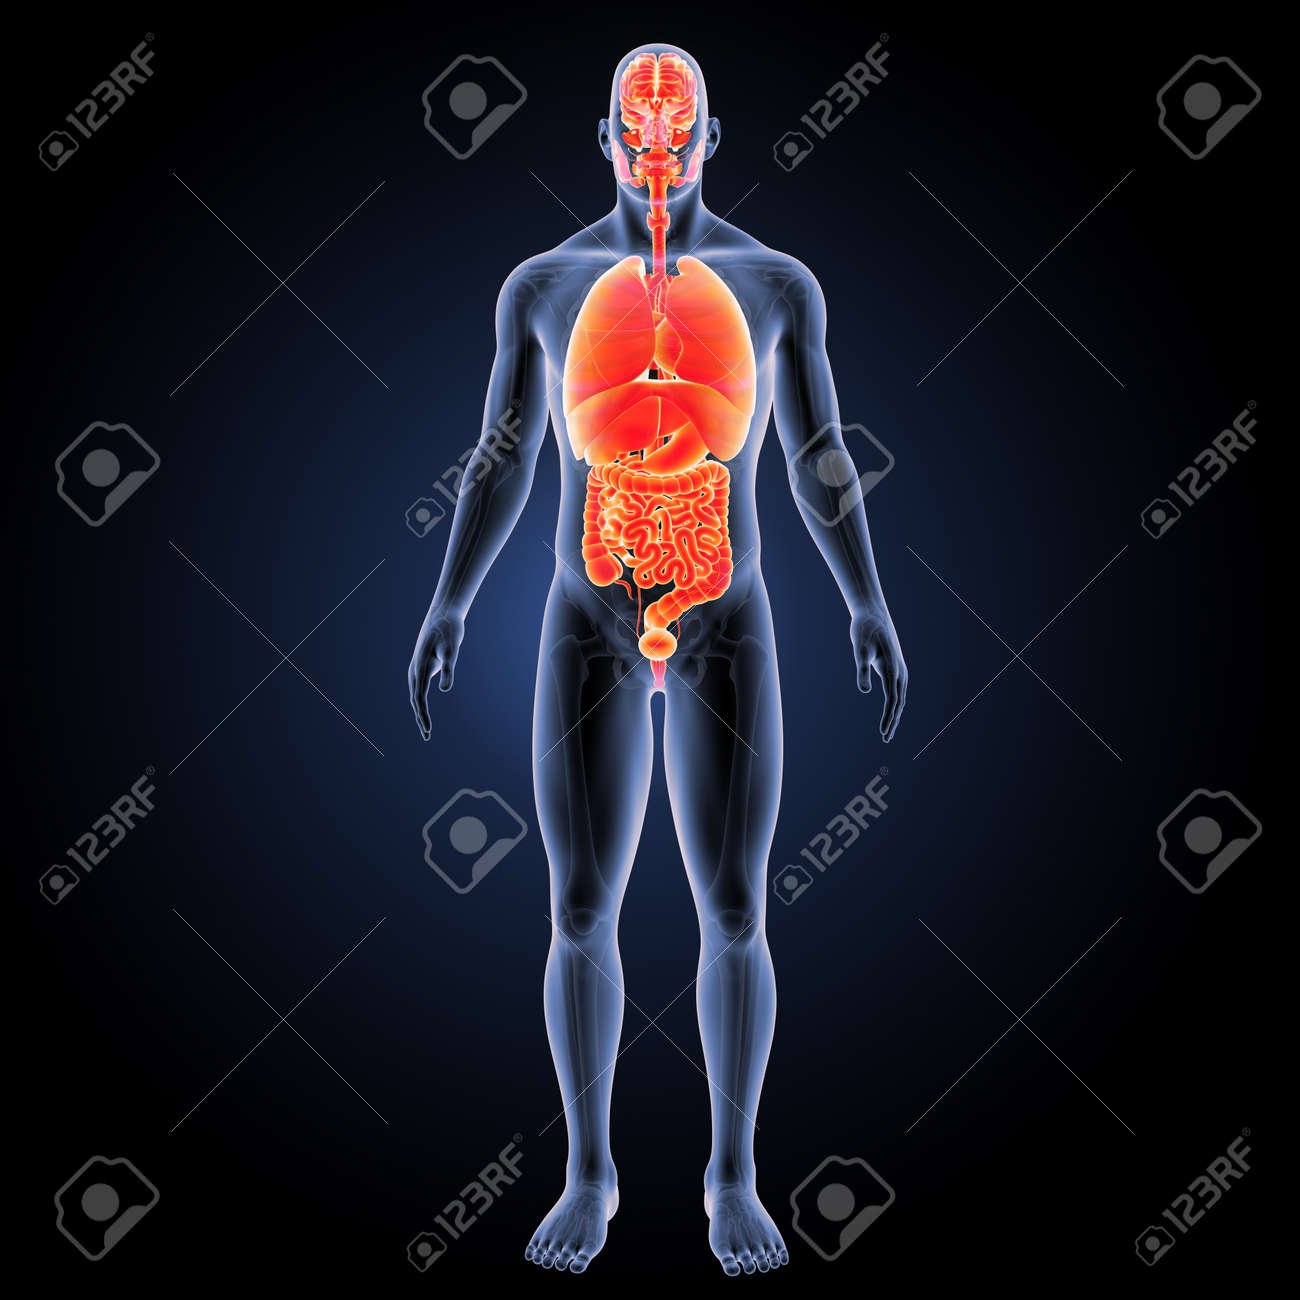 Human Organs With Skeleton Anterior View Stock Photo, Picture And ...